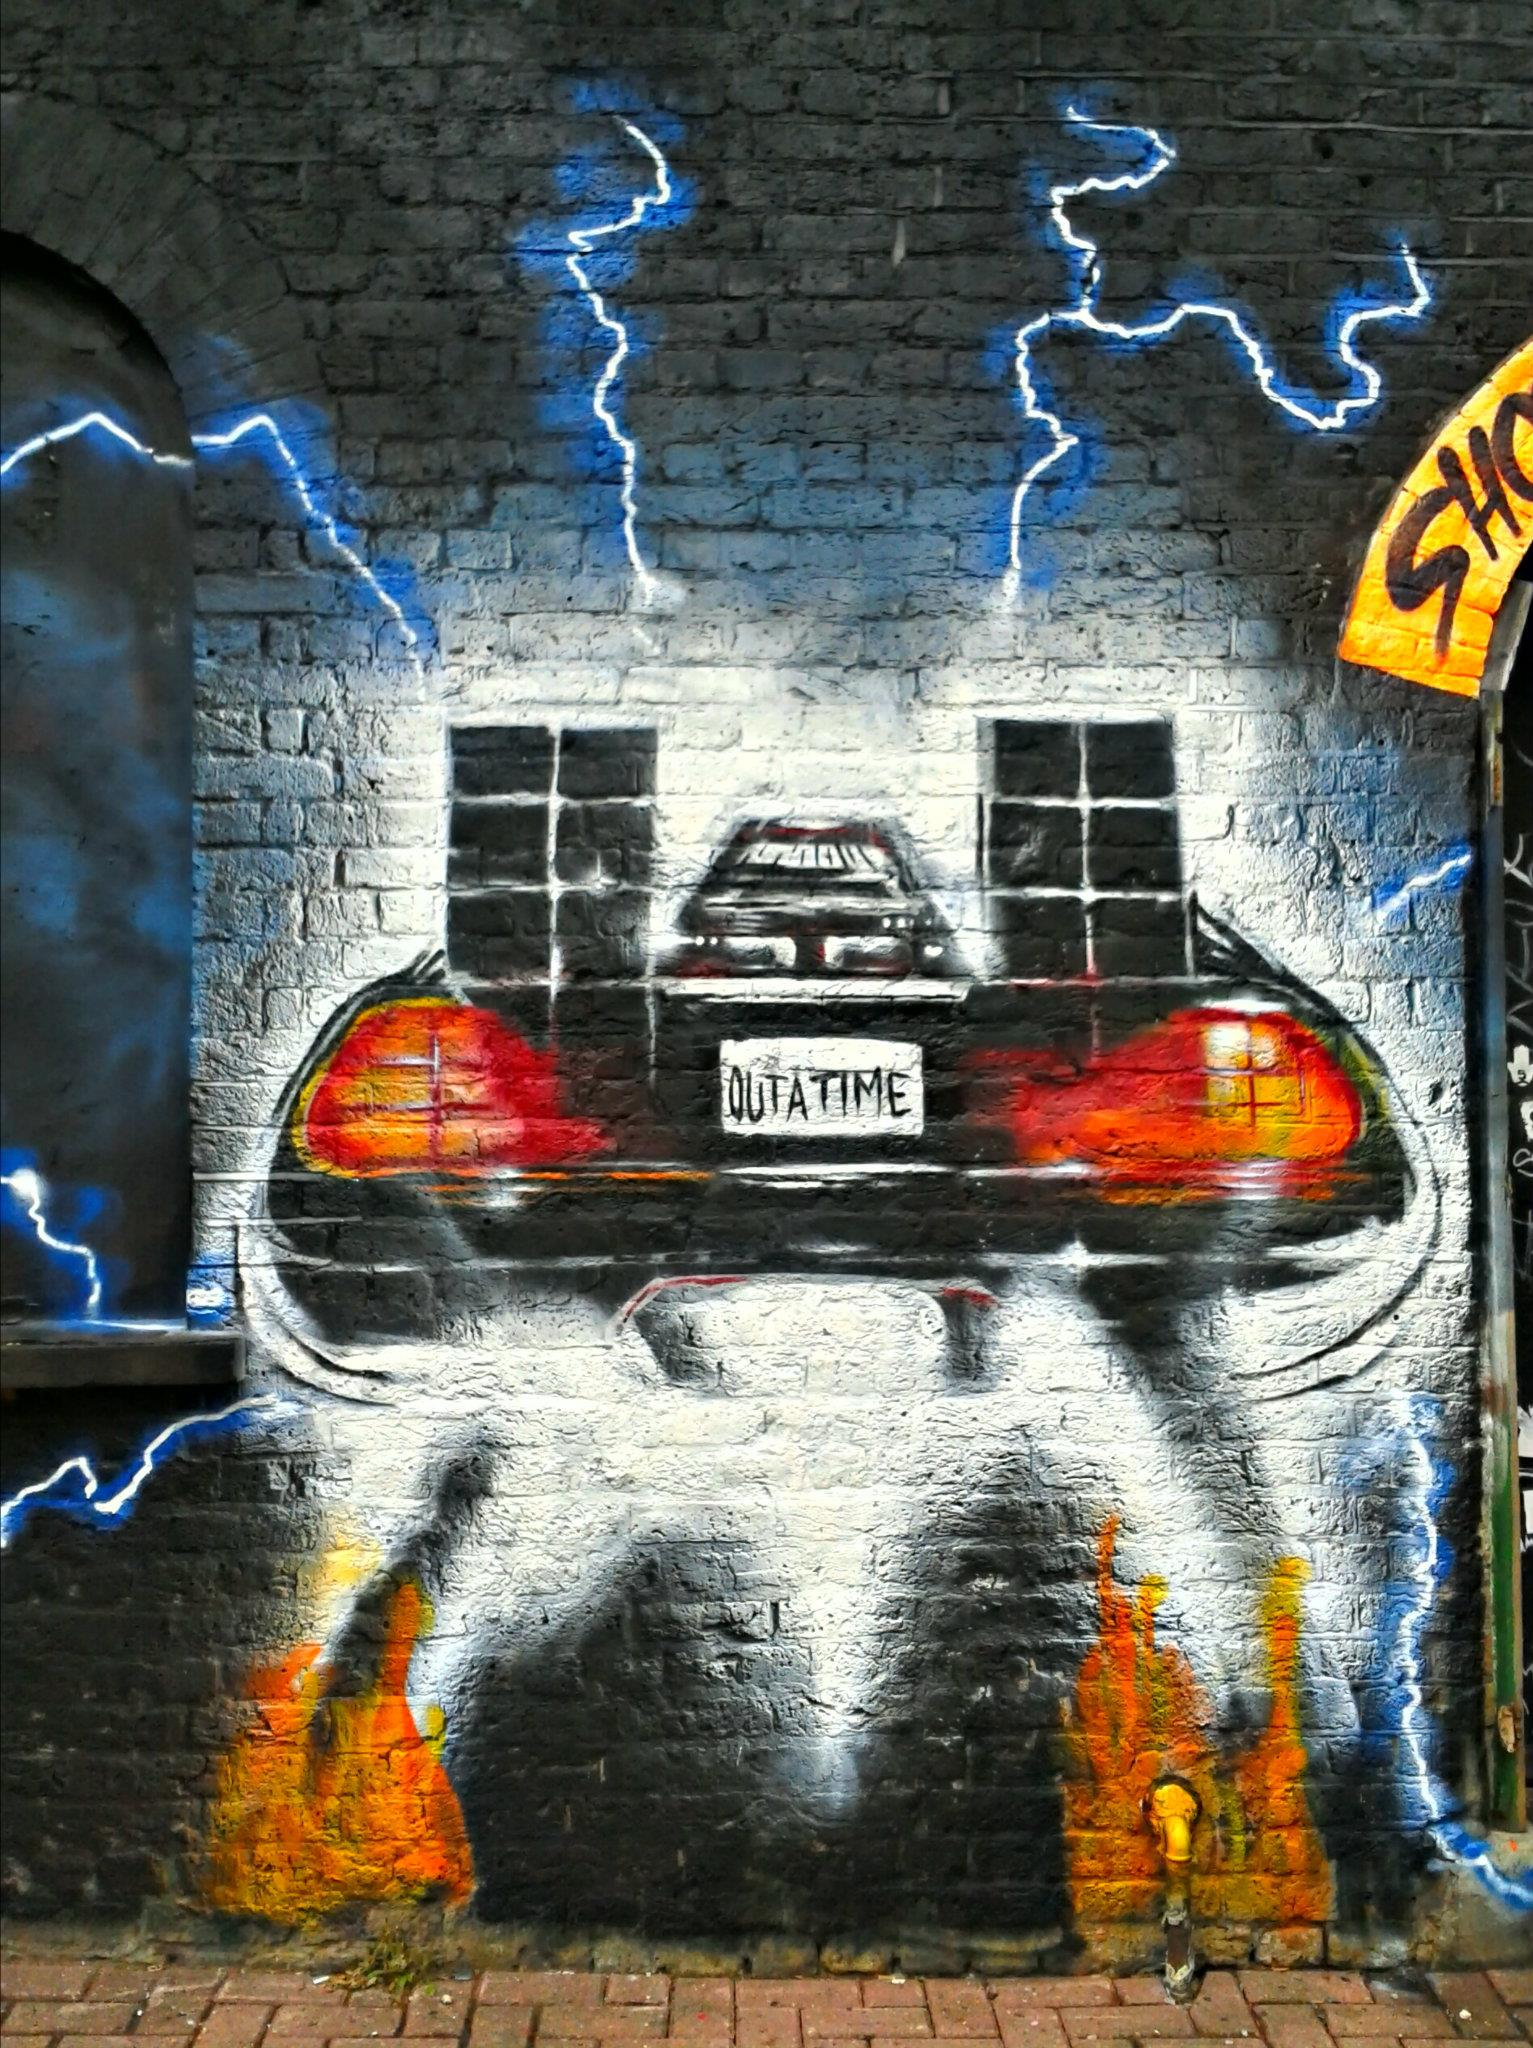 Graffiti_in_Shoreditch,_London_-_Back_to_the_Future_by_Graffiti_Life_(9422243113)